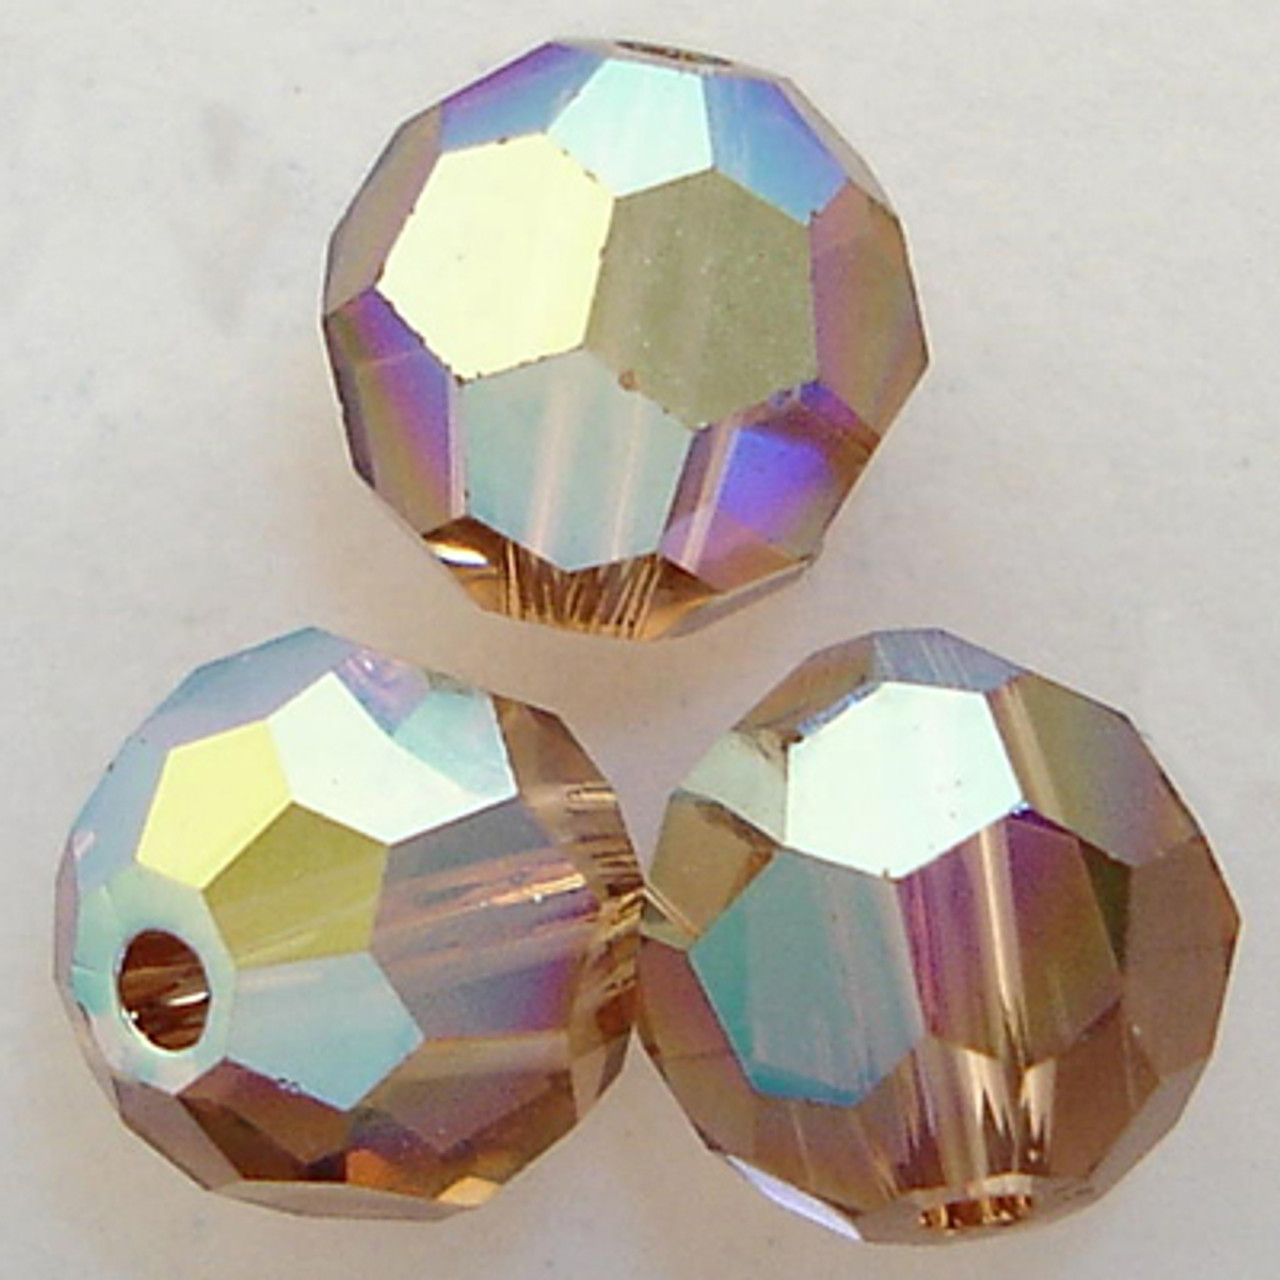 dd47c1710 Swarovski 5000 4mm Light Smoked Topaz AB Bead | Rainbows Of Light